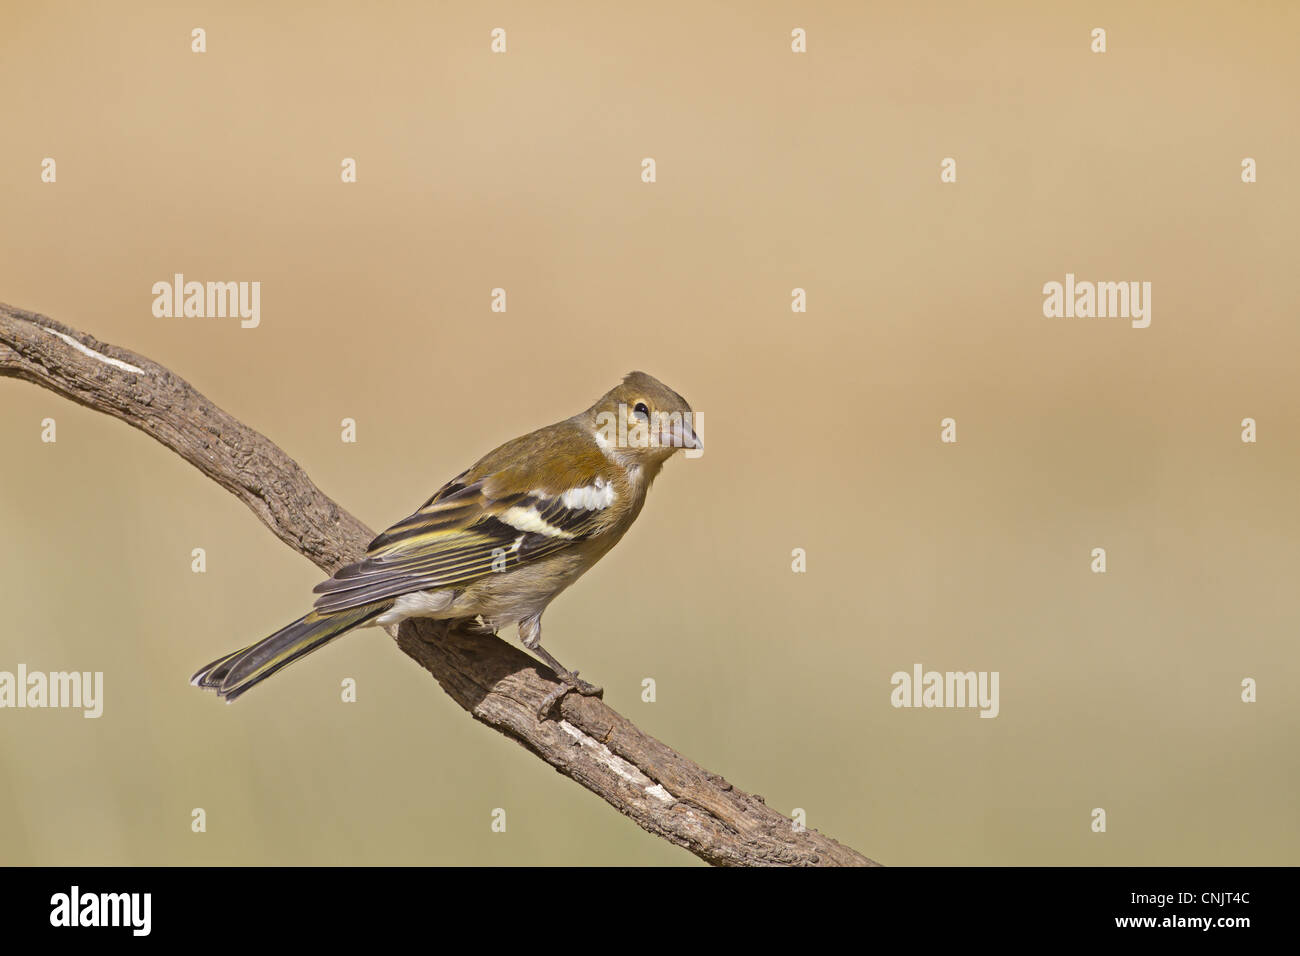 Chaffinch (Fringilla coelebs) adult female, perched on twig, Northern Spain, july - Stock Image